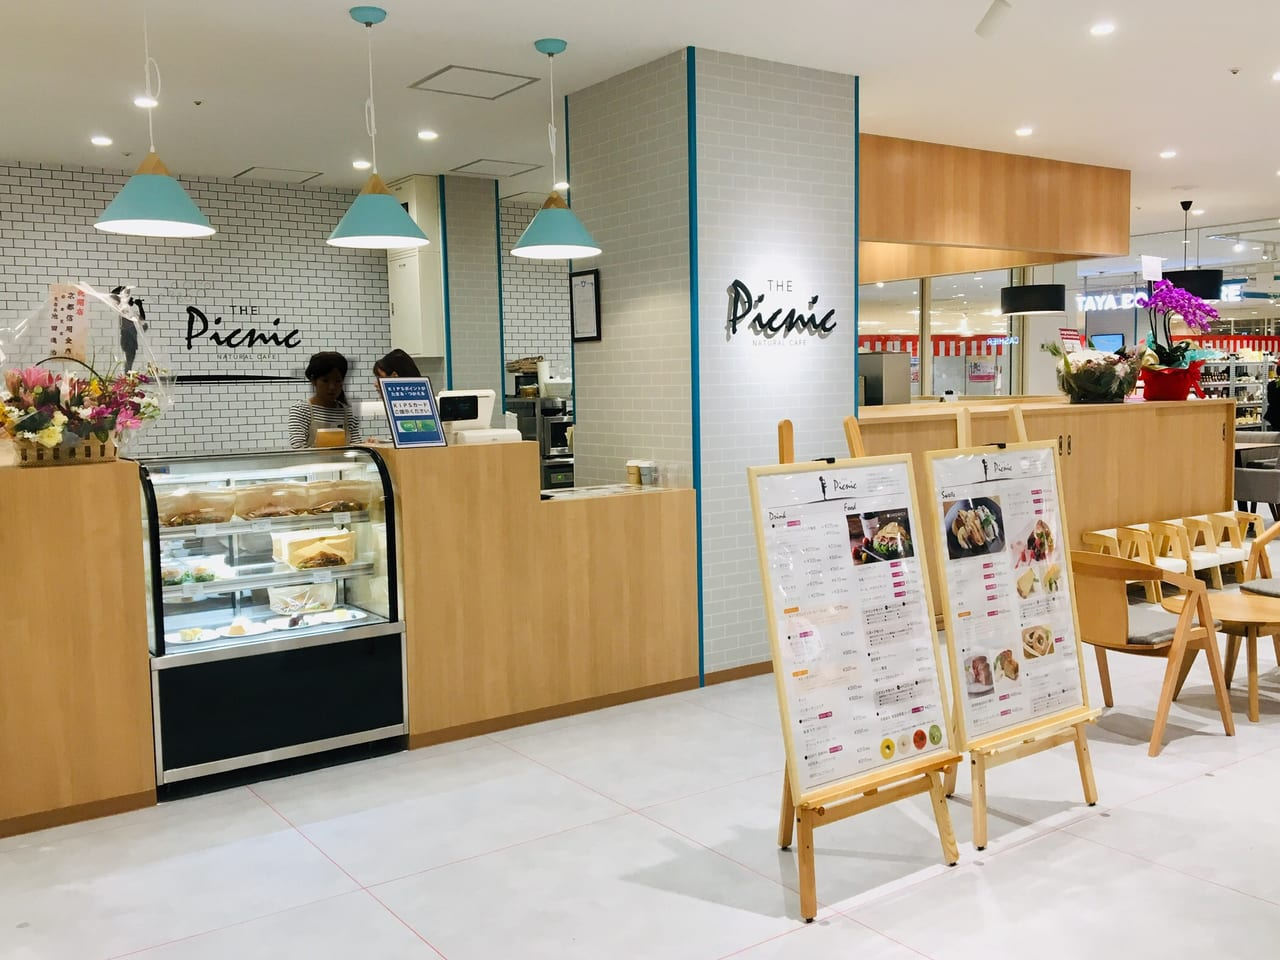 TSUTAYA cafe